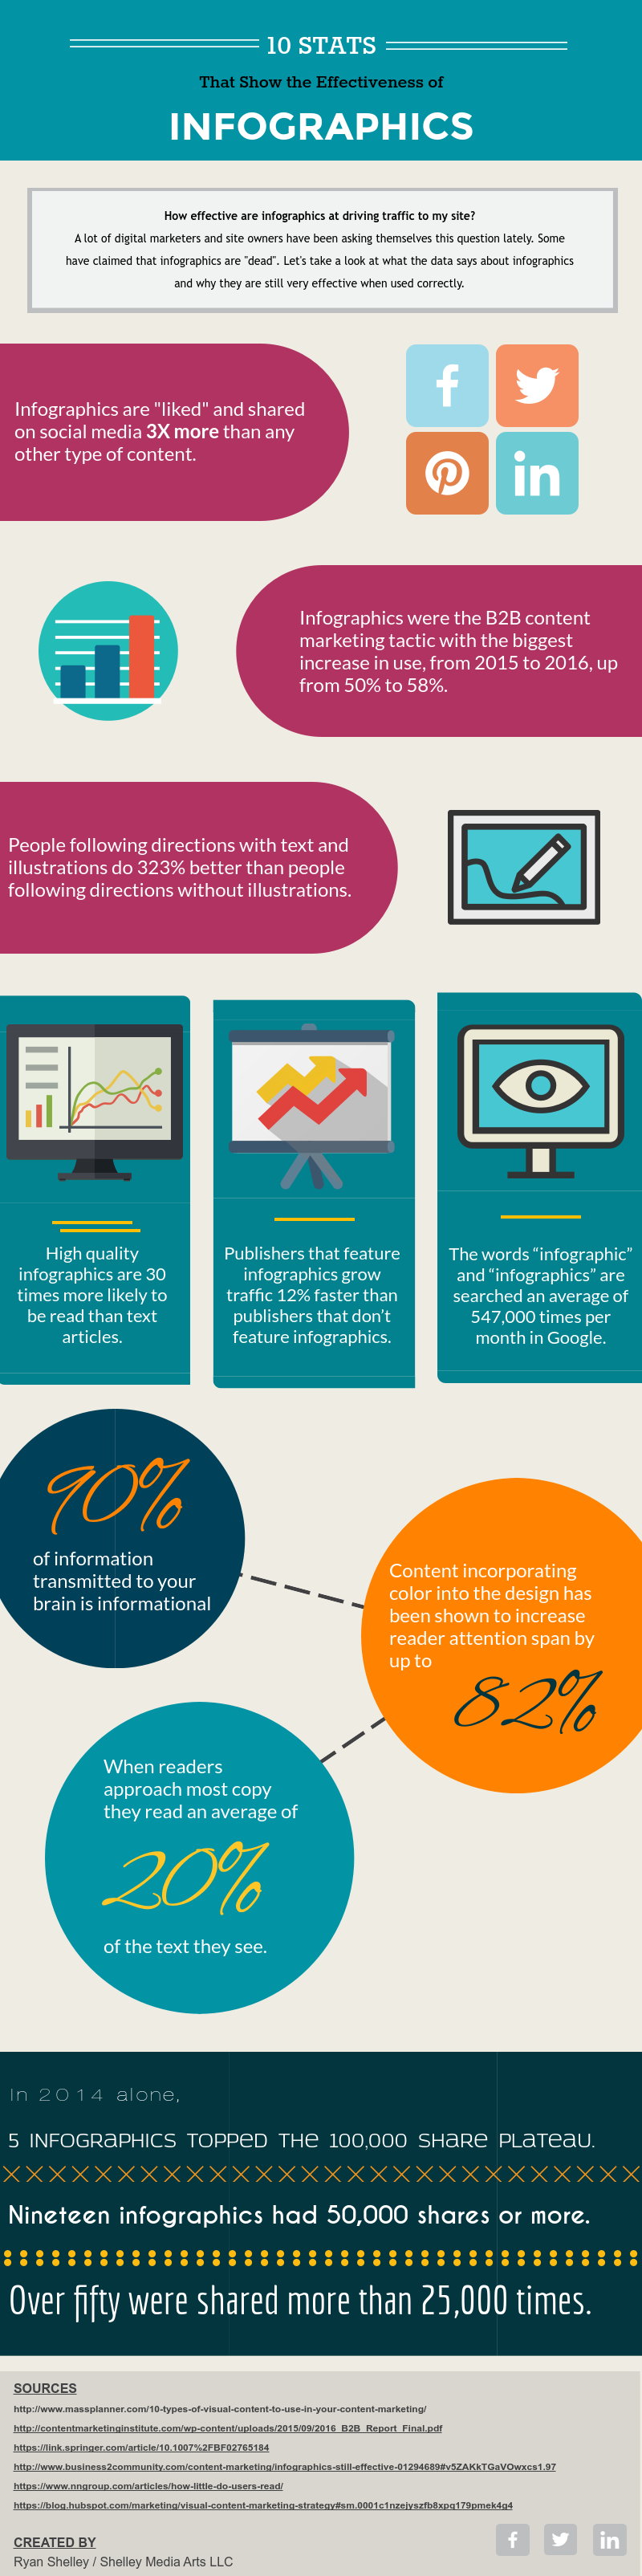 Are Infographics Still Effective? | Infographic ...